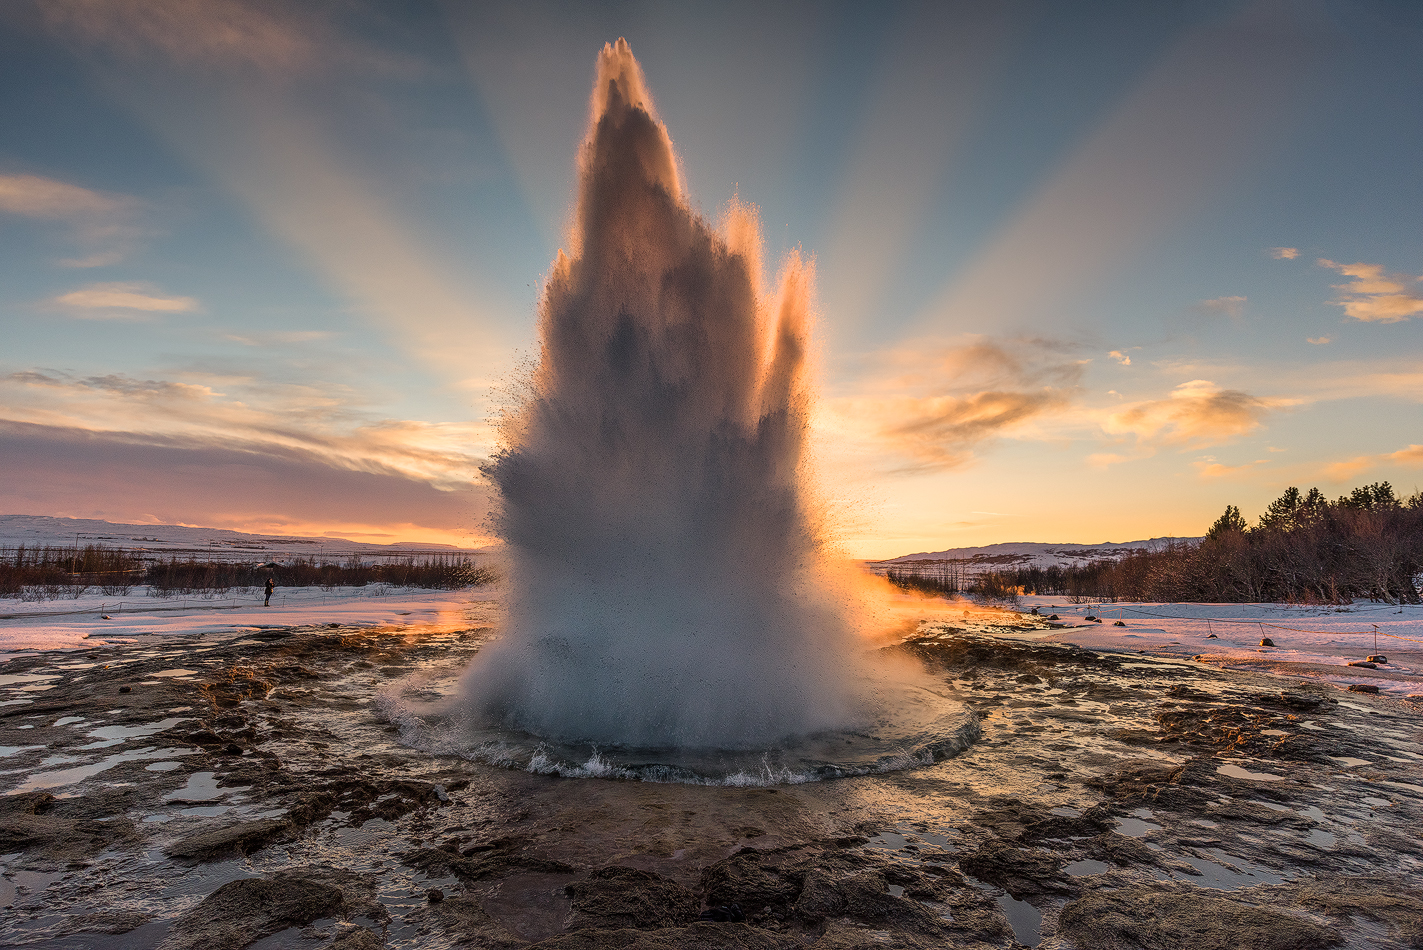 On the Golden Circle in South Iceland, the geyser Strokkur erupts every five to ten minutes.